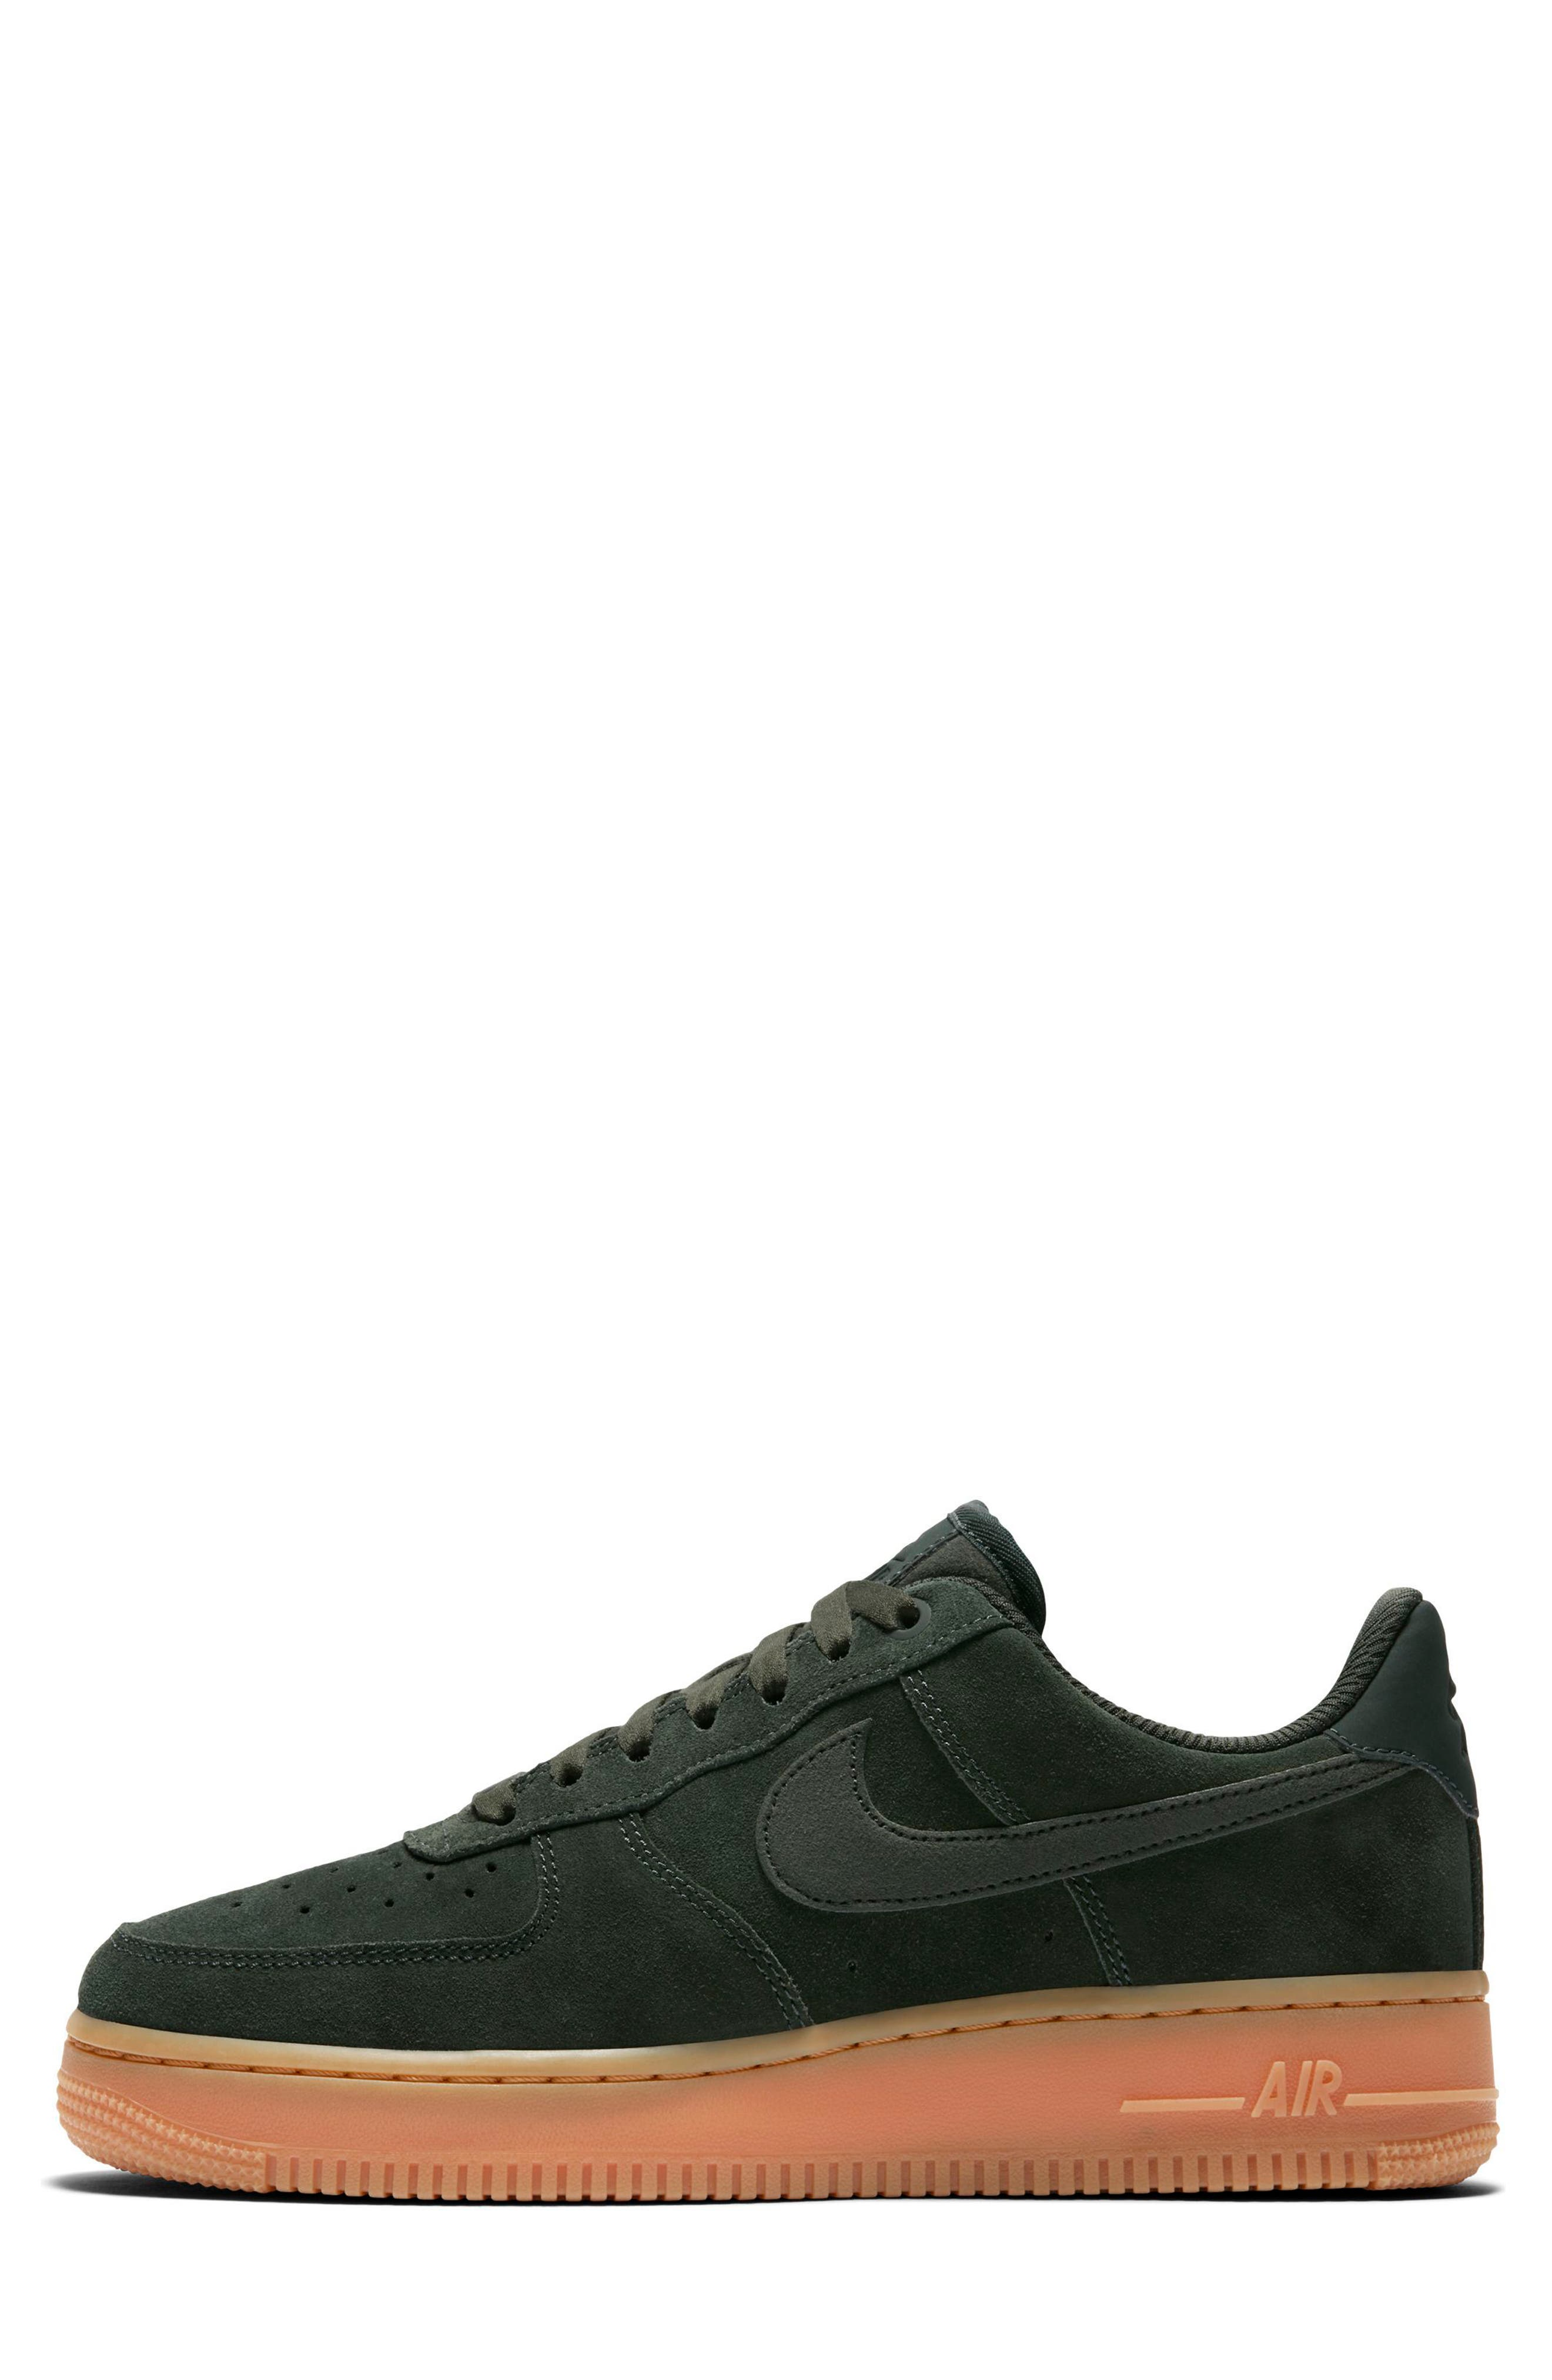 Air Force 1 '07 SE Sneaker,                             Alternate thumbnail 3, color,                             Outdoor Green/ Outdoor Green